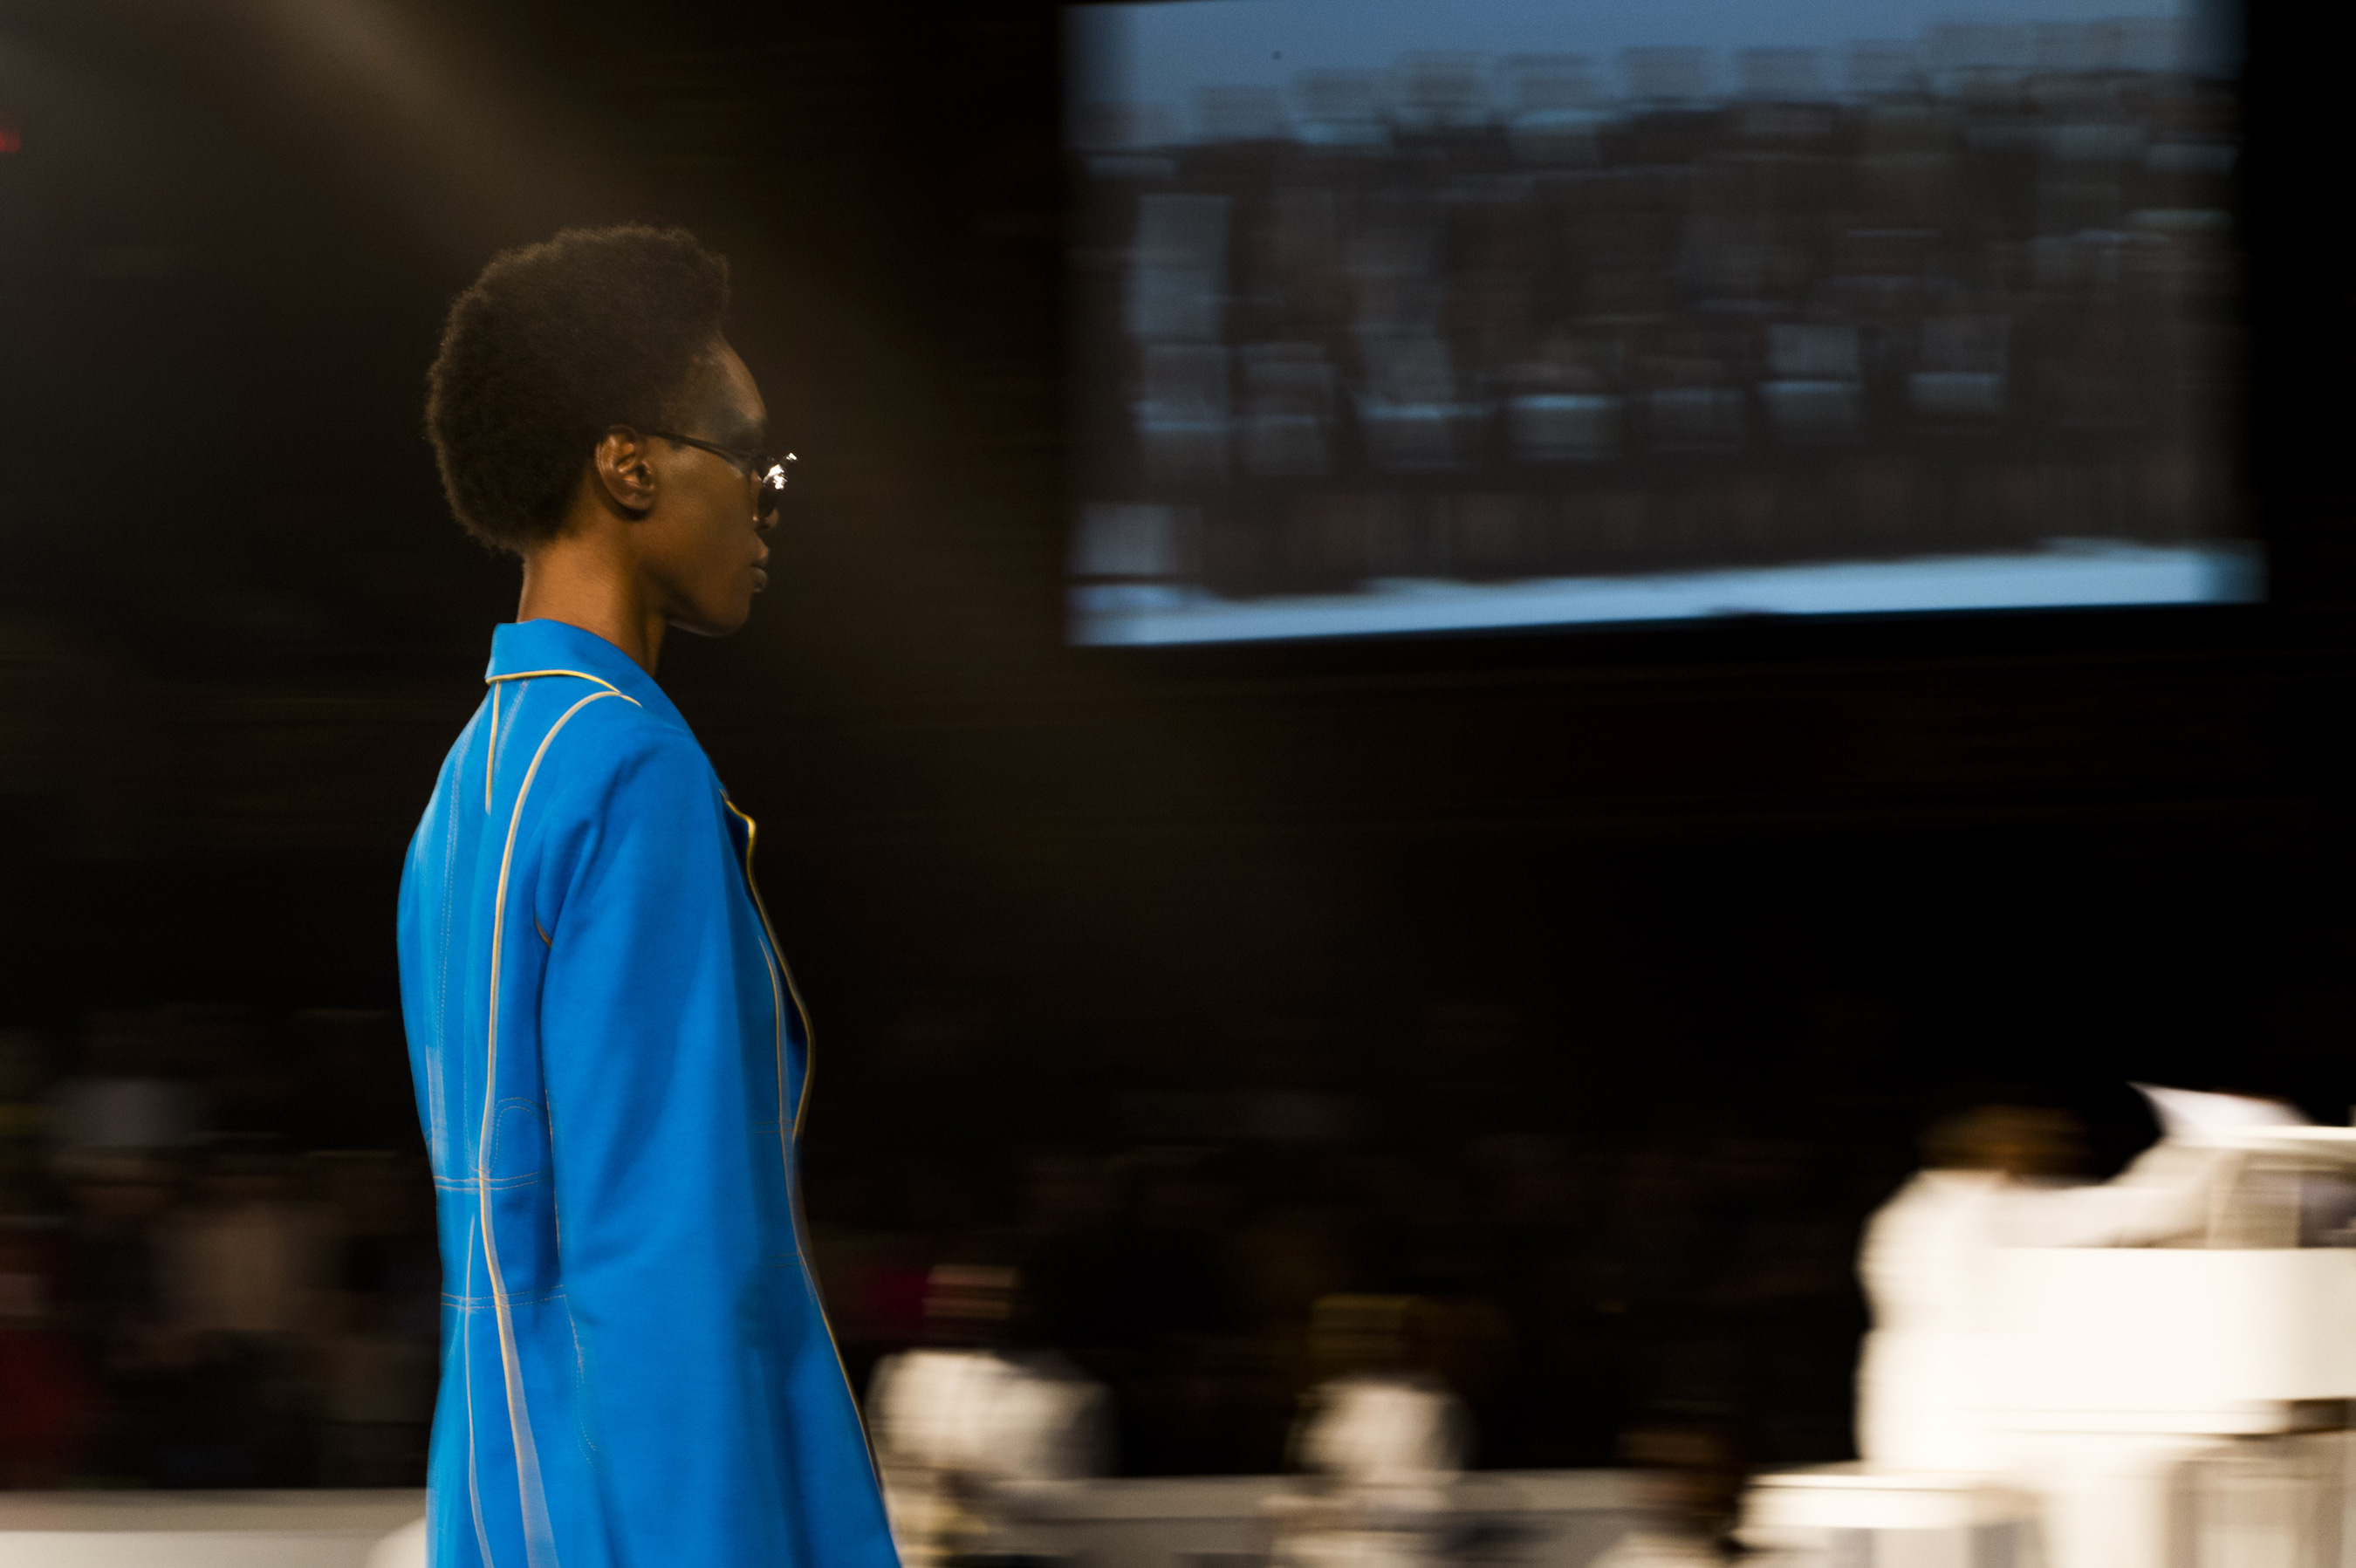 Pyer Moss Spring 2020 Fashion Show Atmosphere